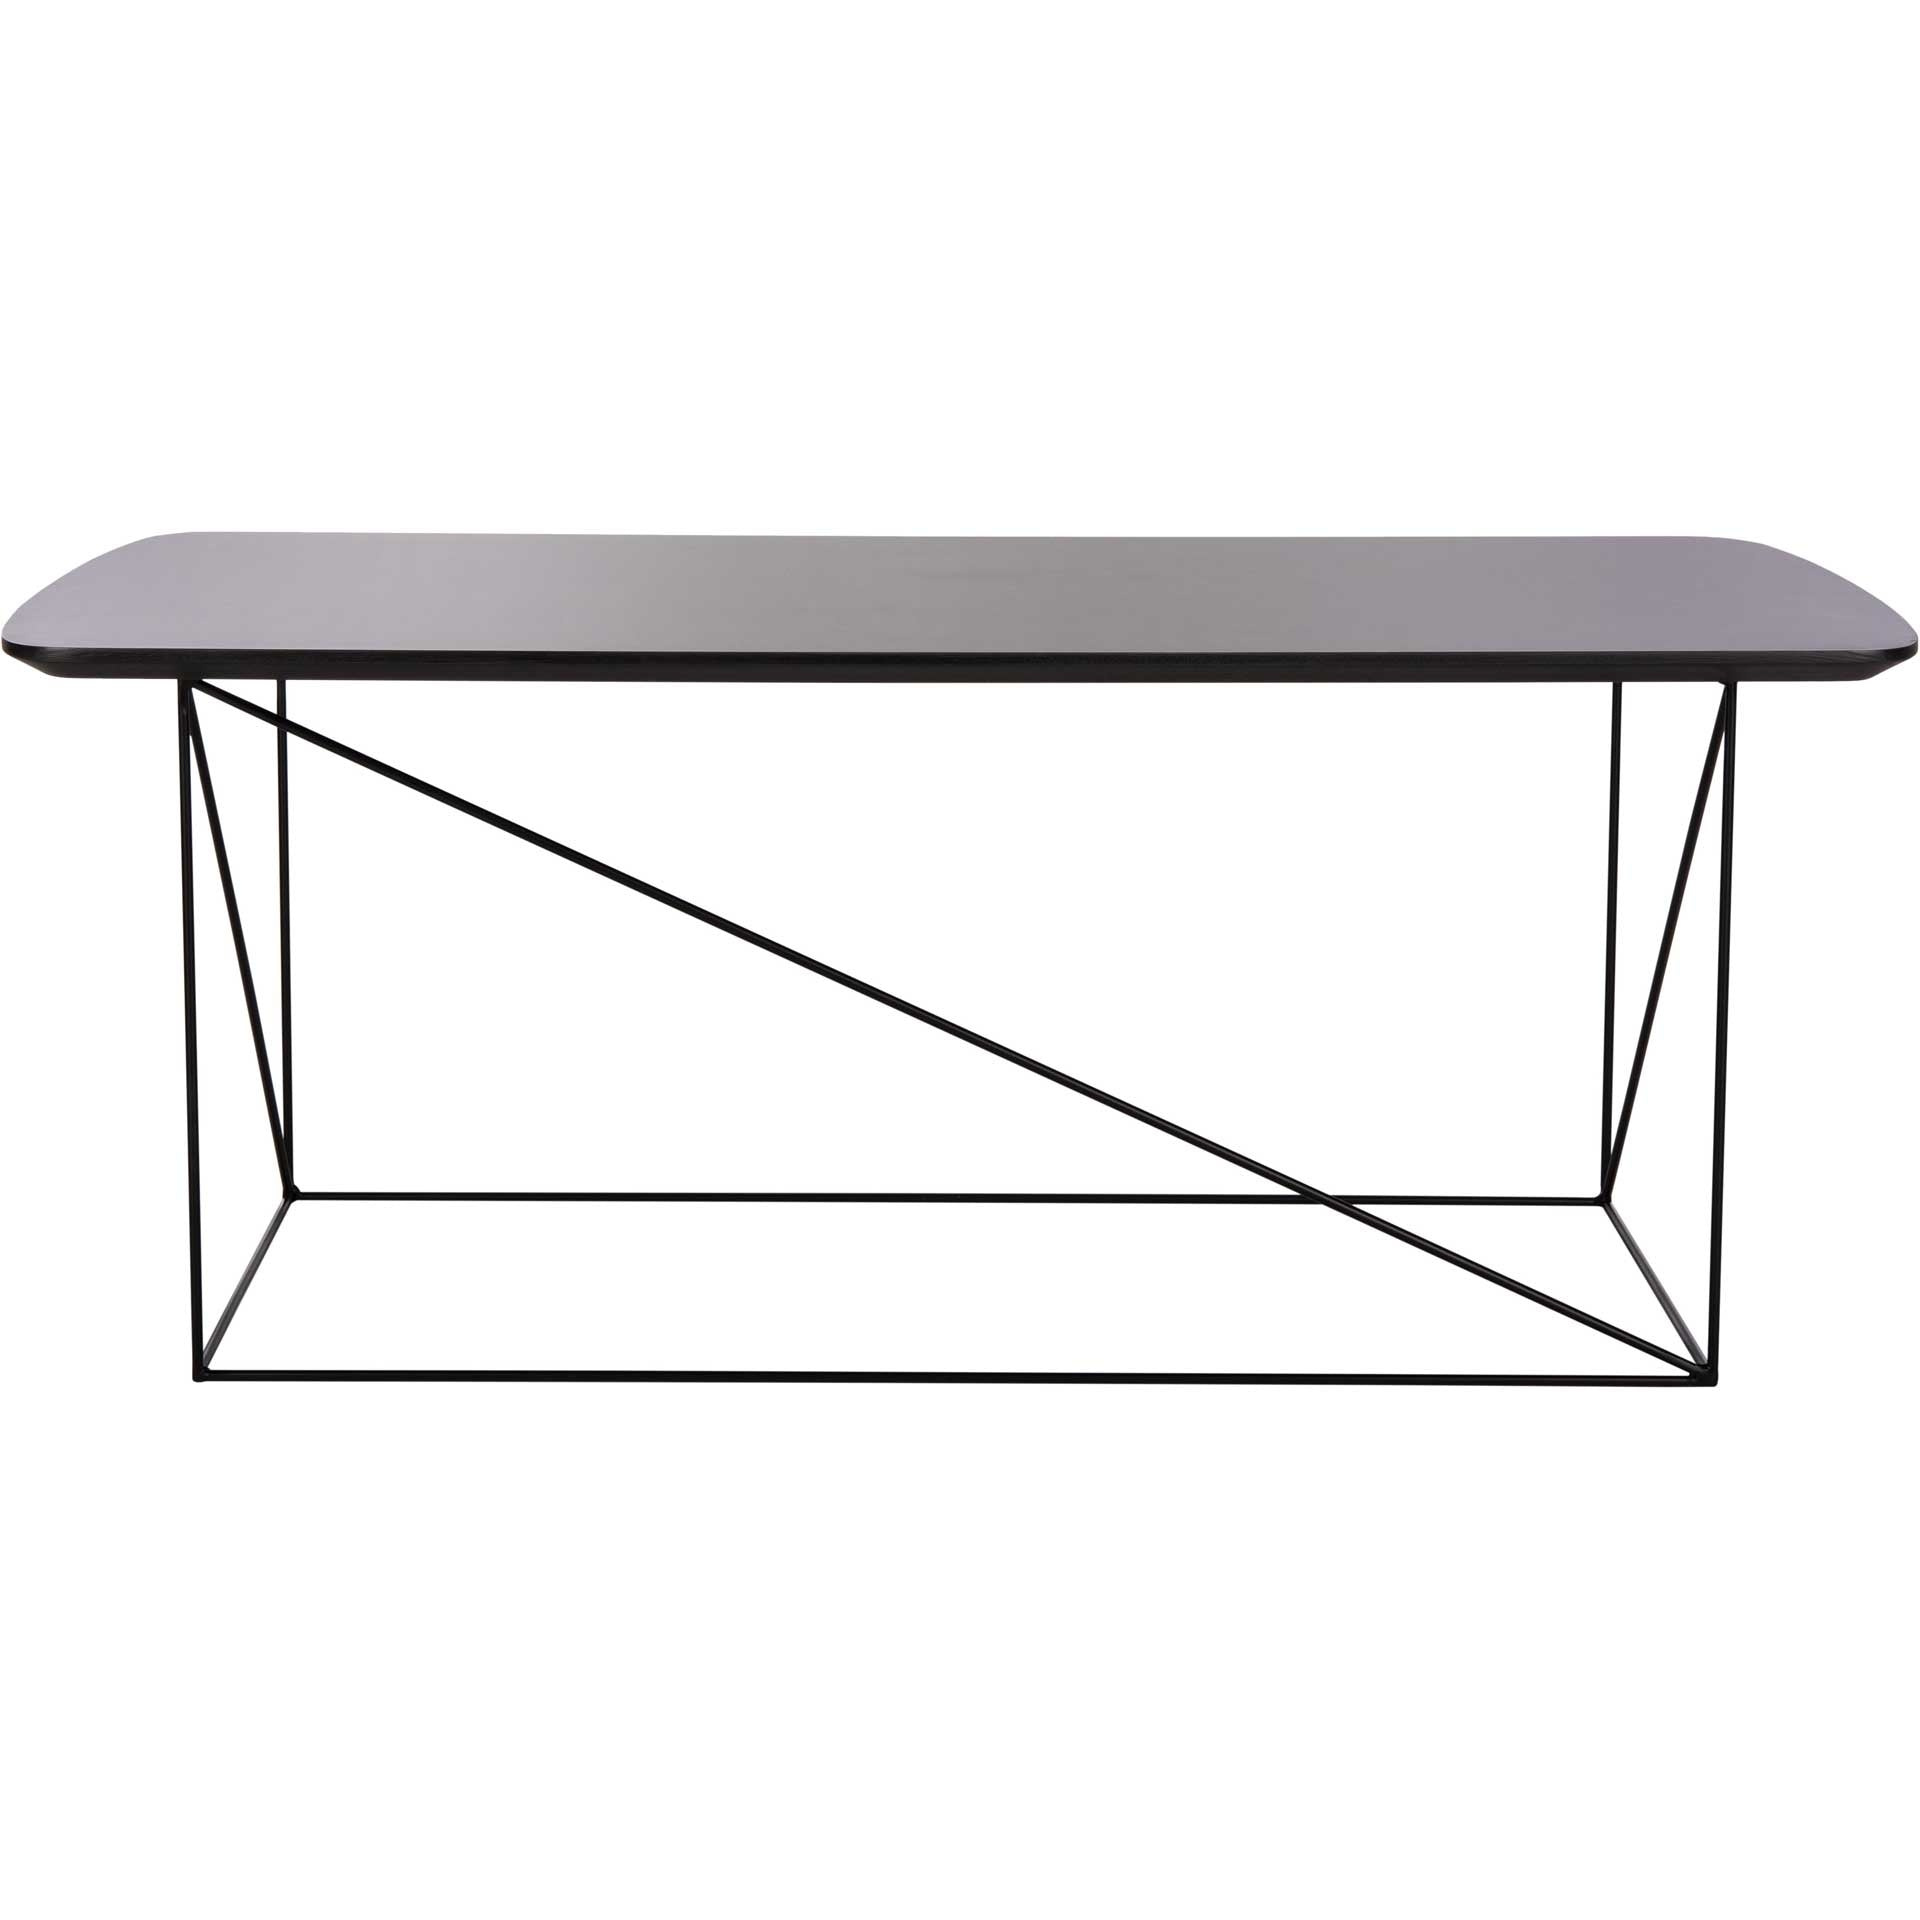 Ryder Coffee Table Gray/Black